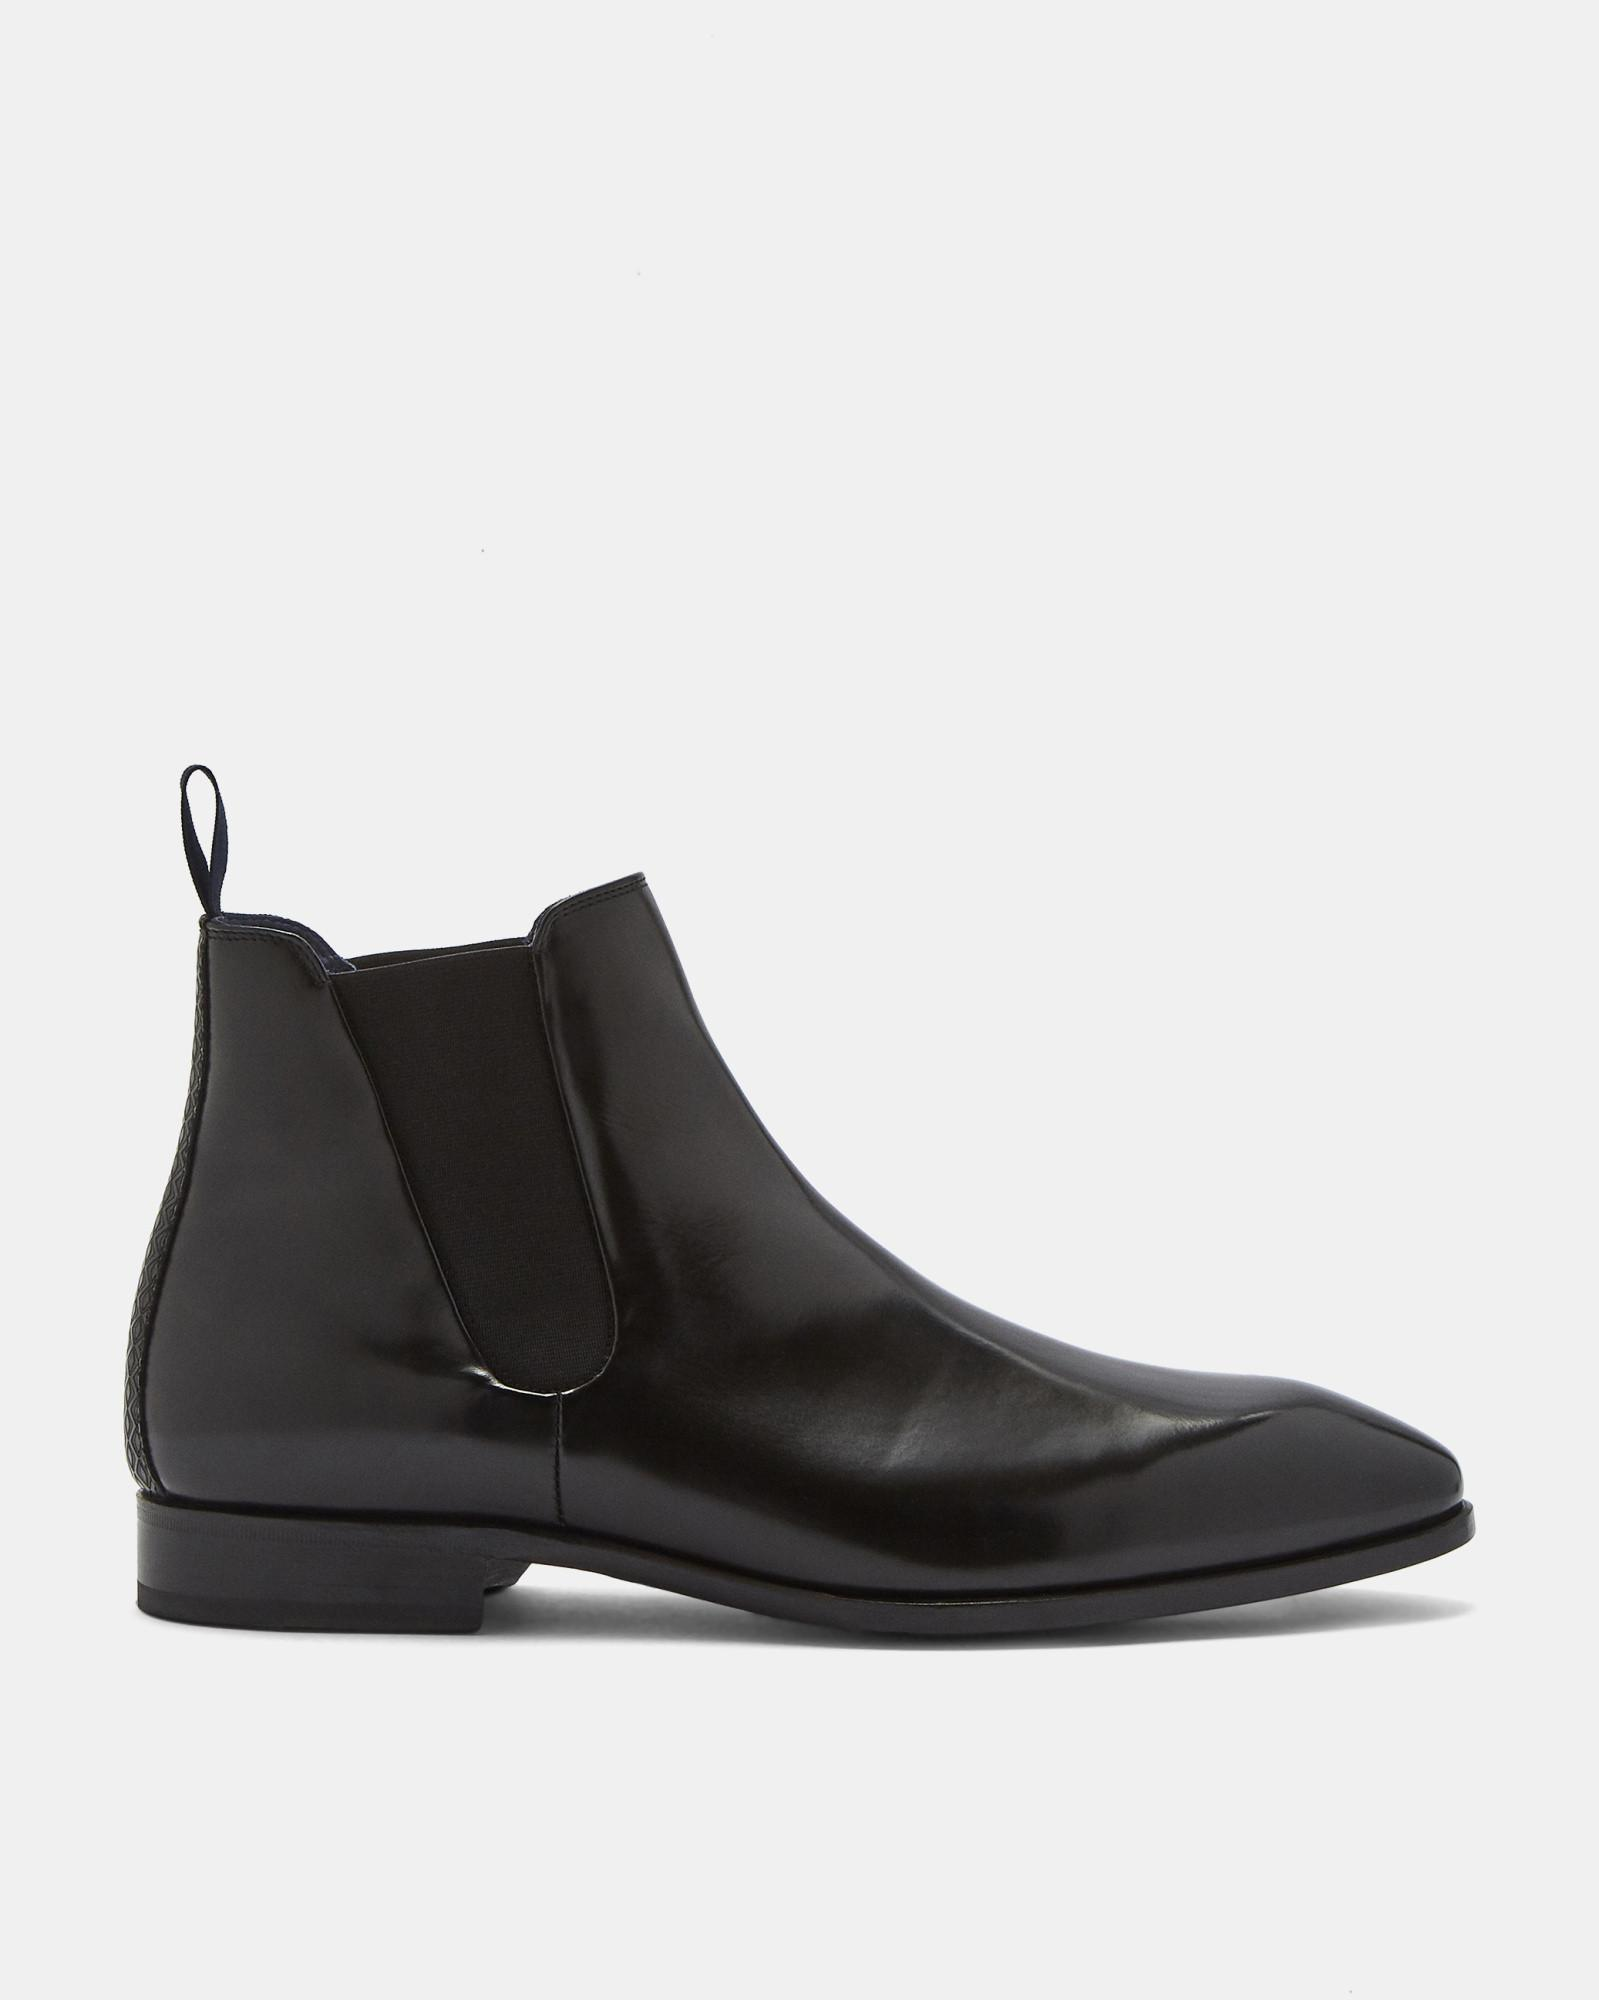 e96b64892f3 Ted Baker Leather Chelsea Boots in Black for Men - Lyst